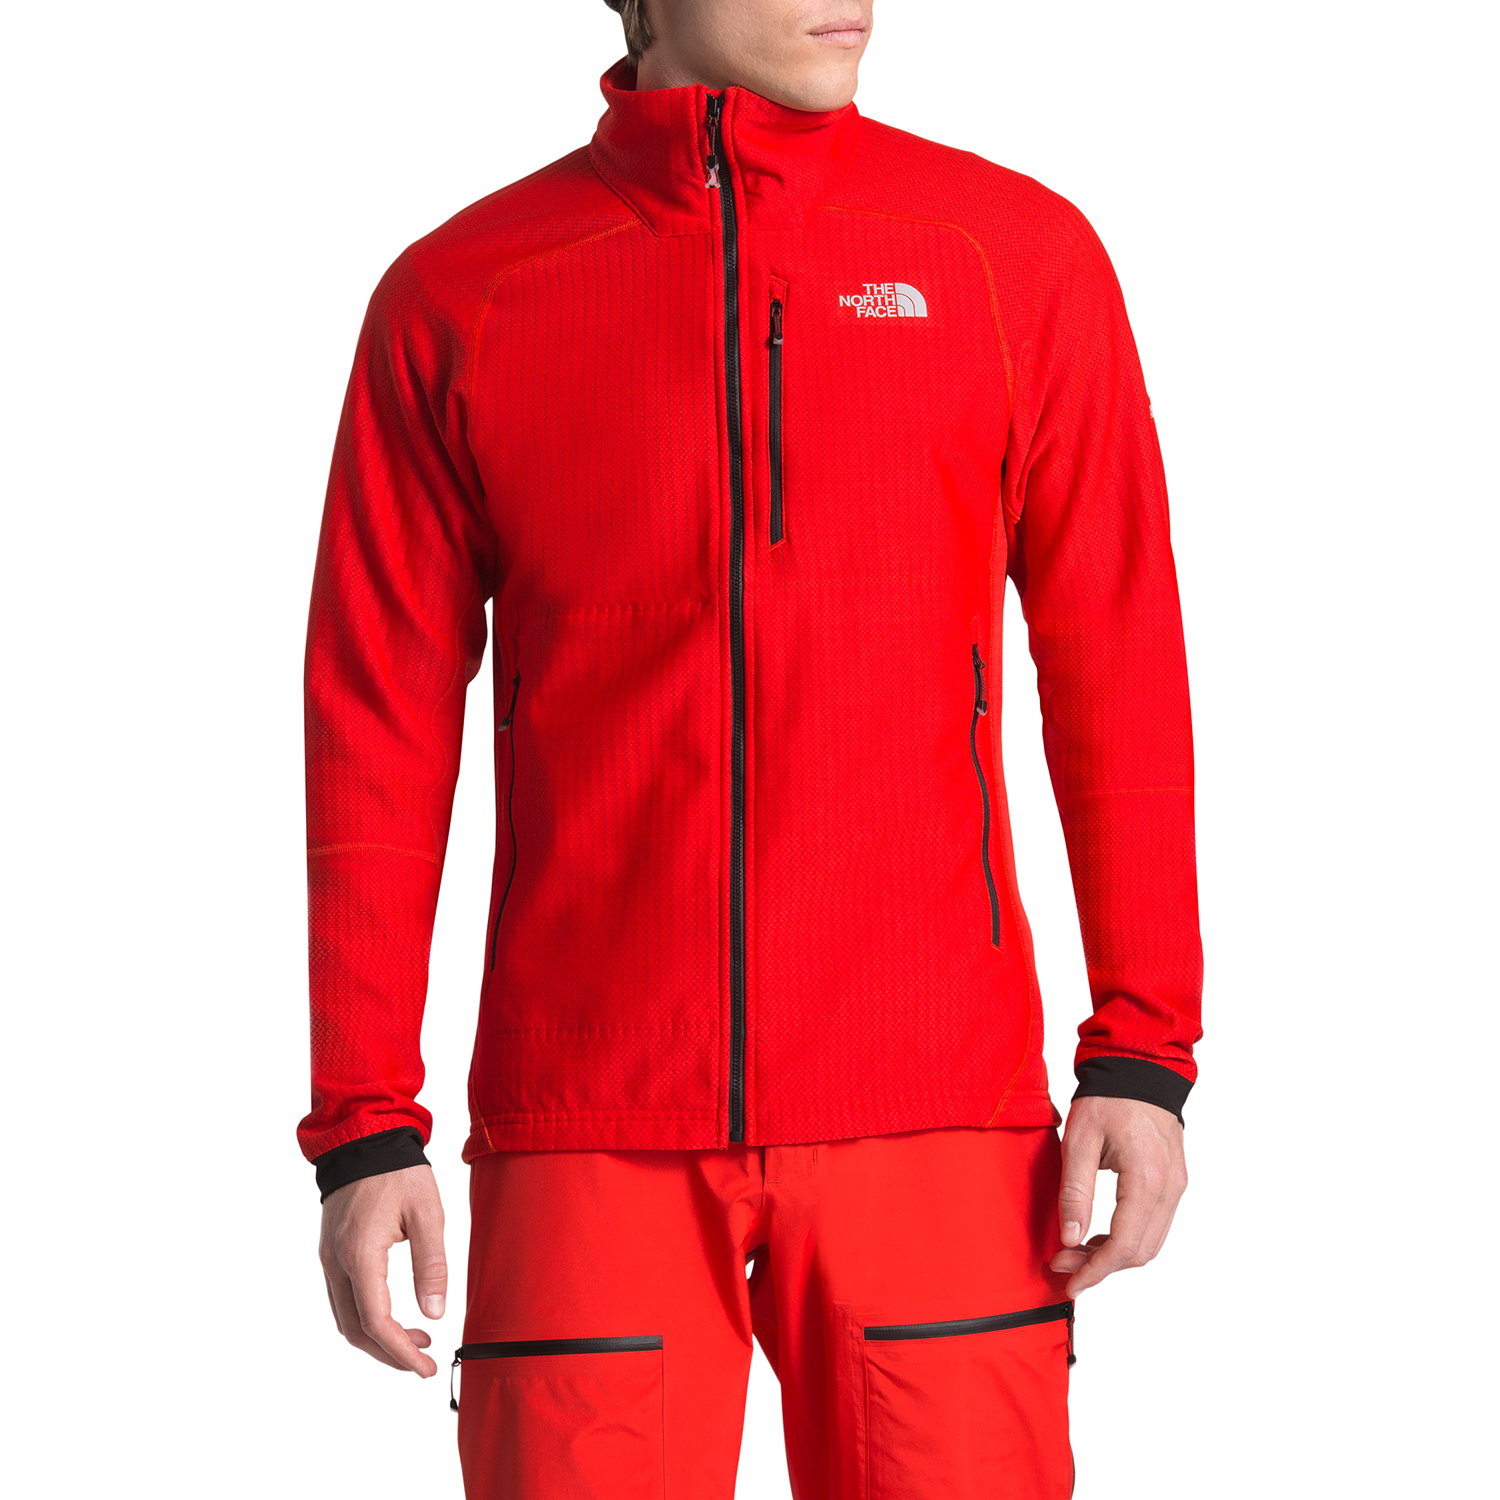 Respond Perceivable Face up  The North Face Summit L2 FuseForm™ Fleece Full-Zip Jacket | evo